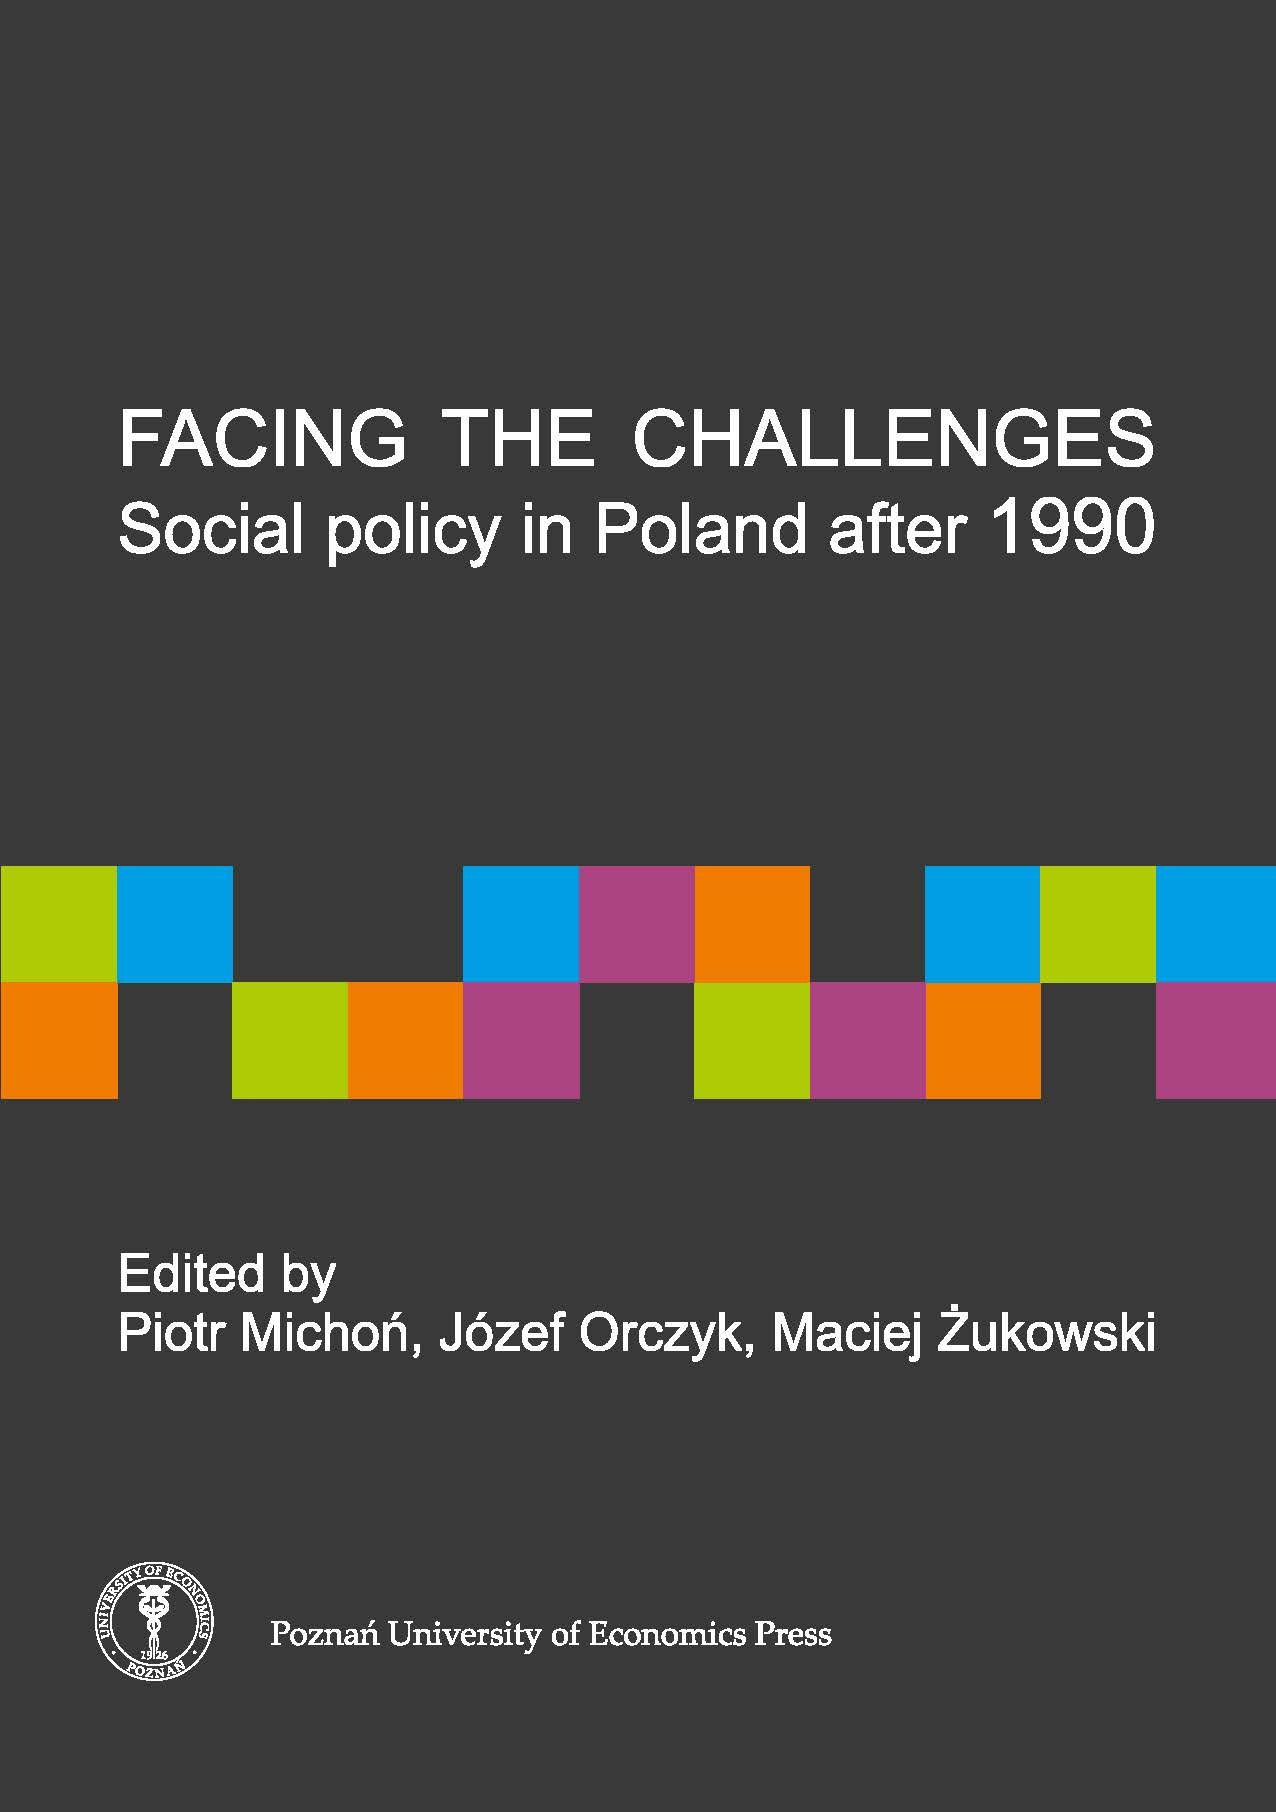 Facing the challenges: social policy in Poland after 1990